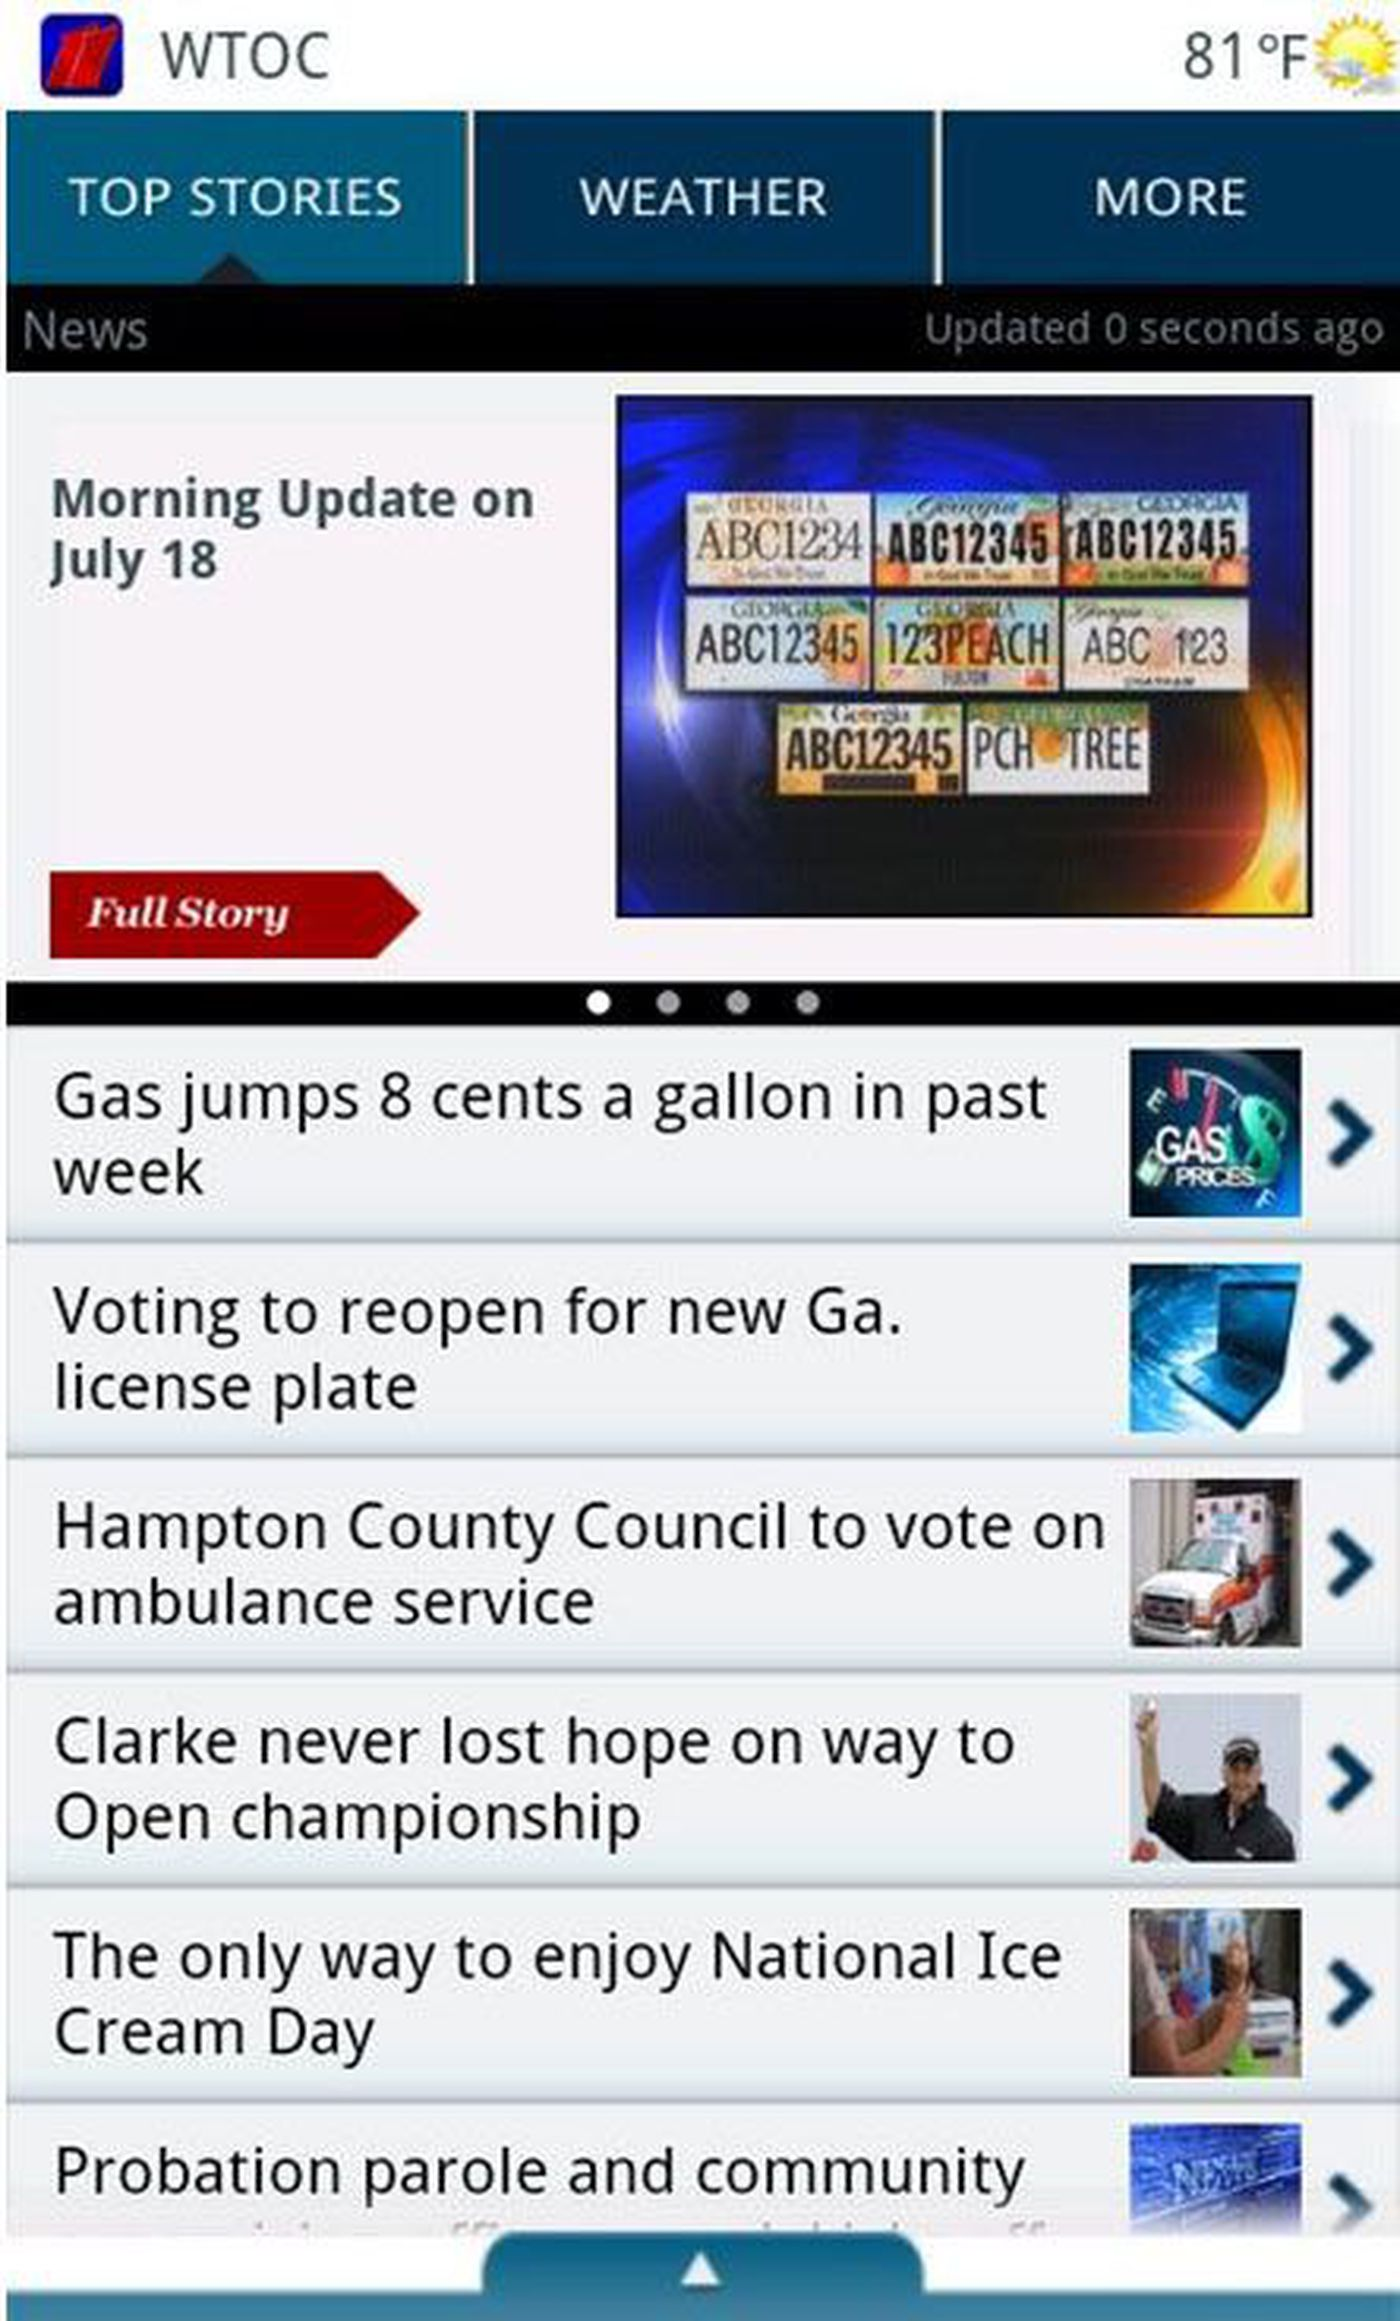 Download WTOC's news app